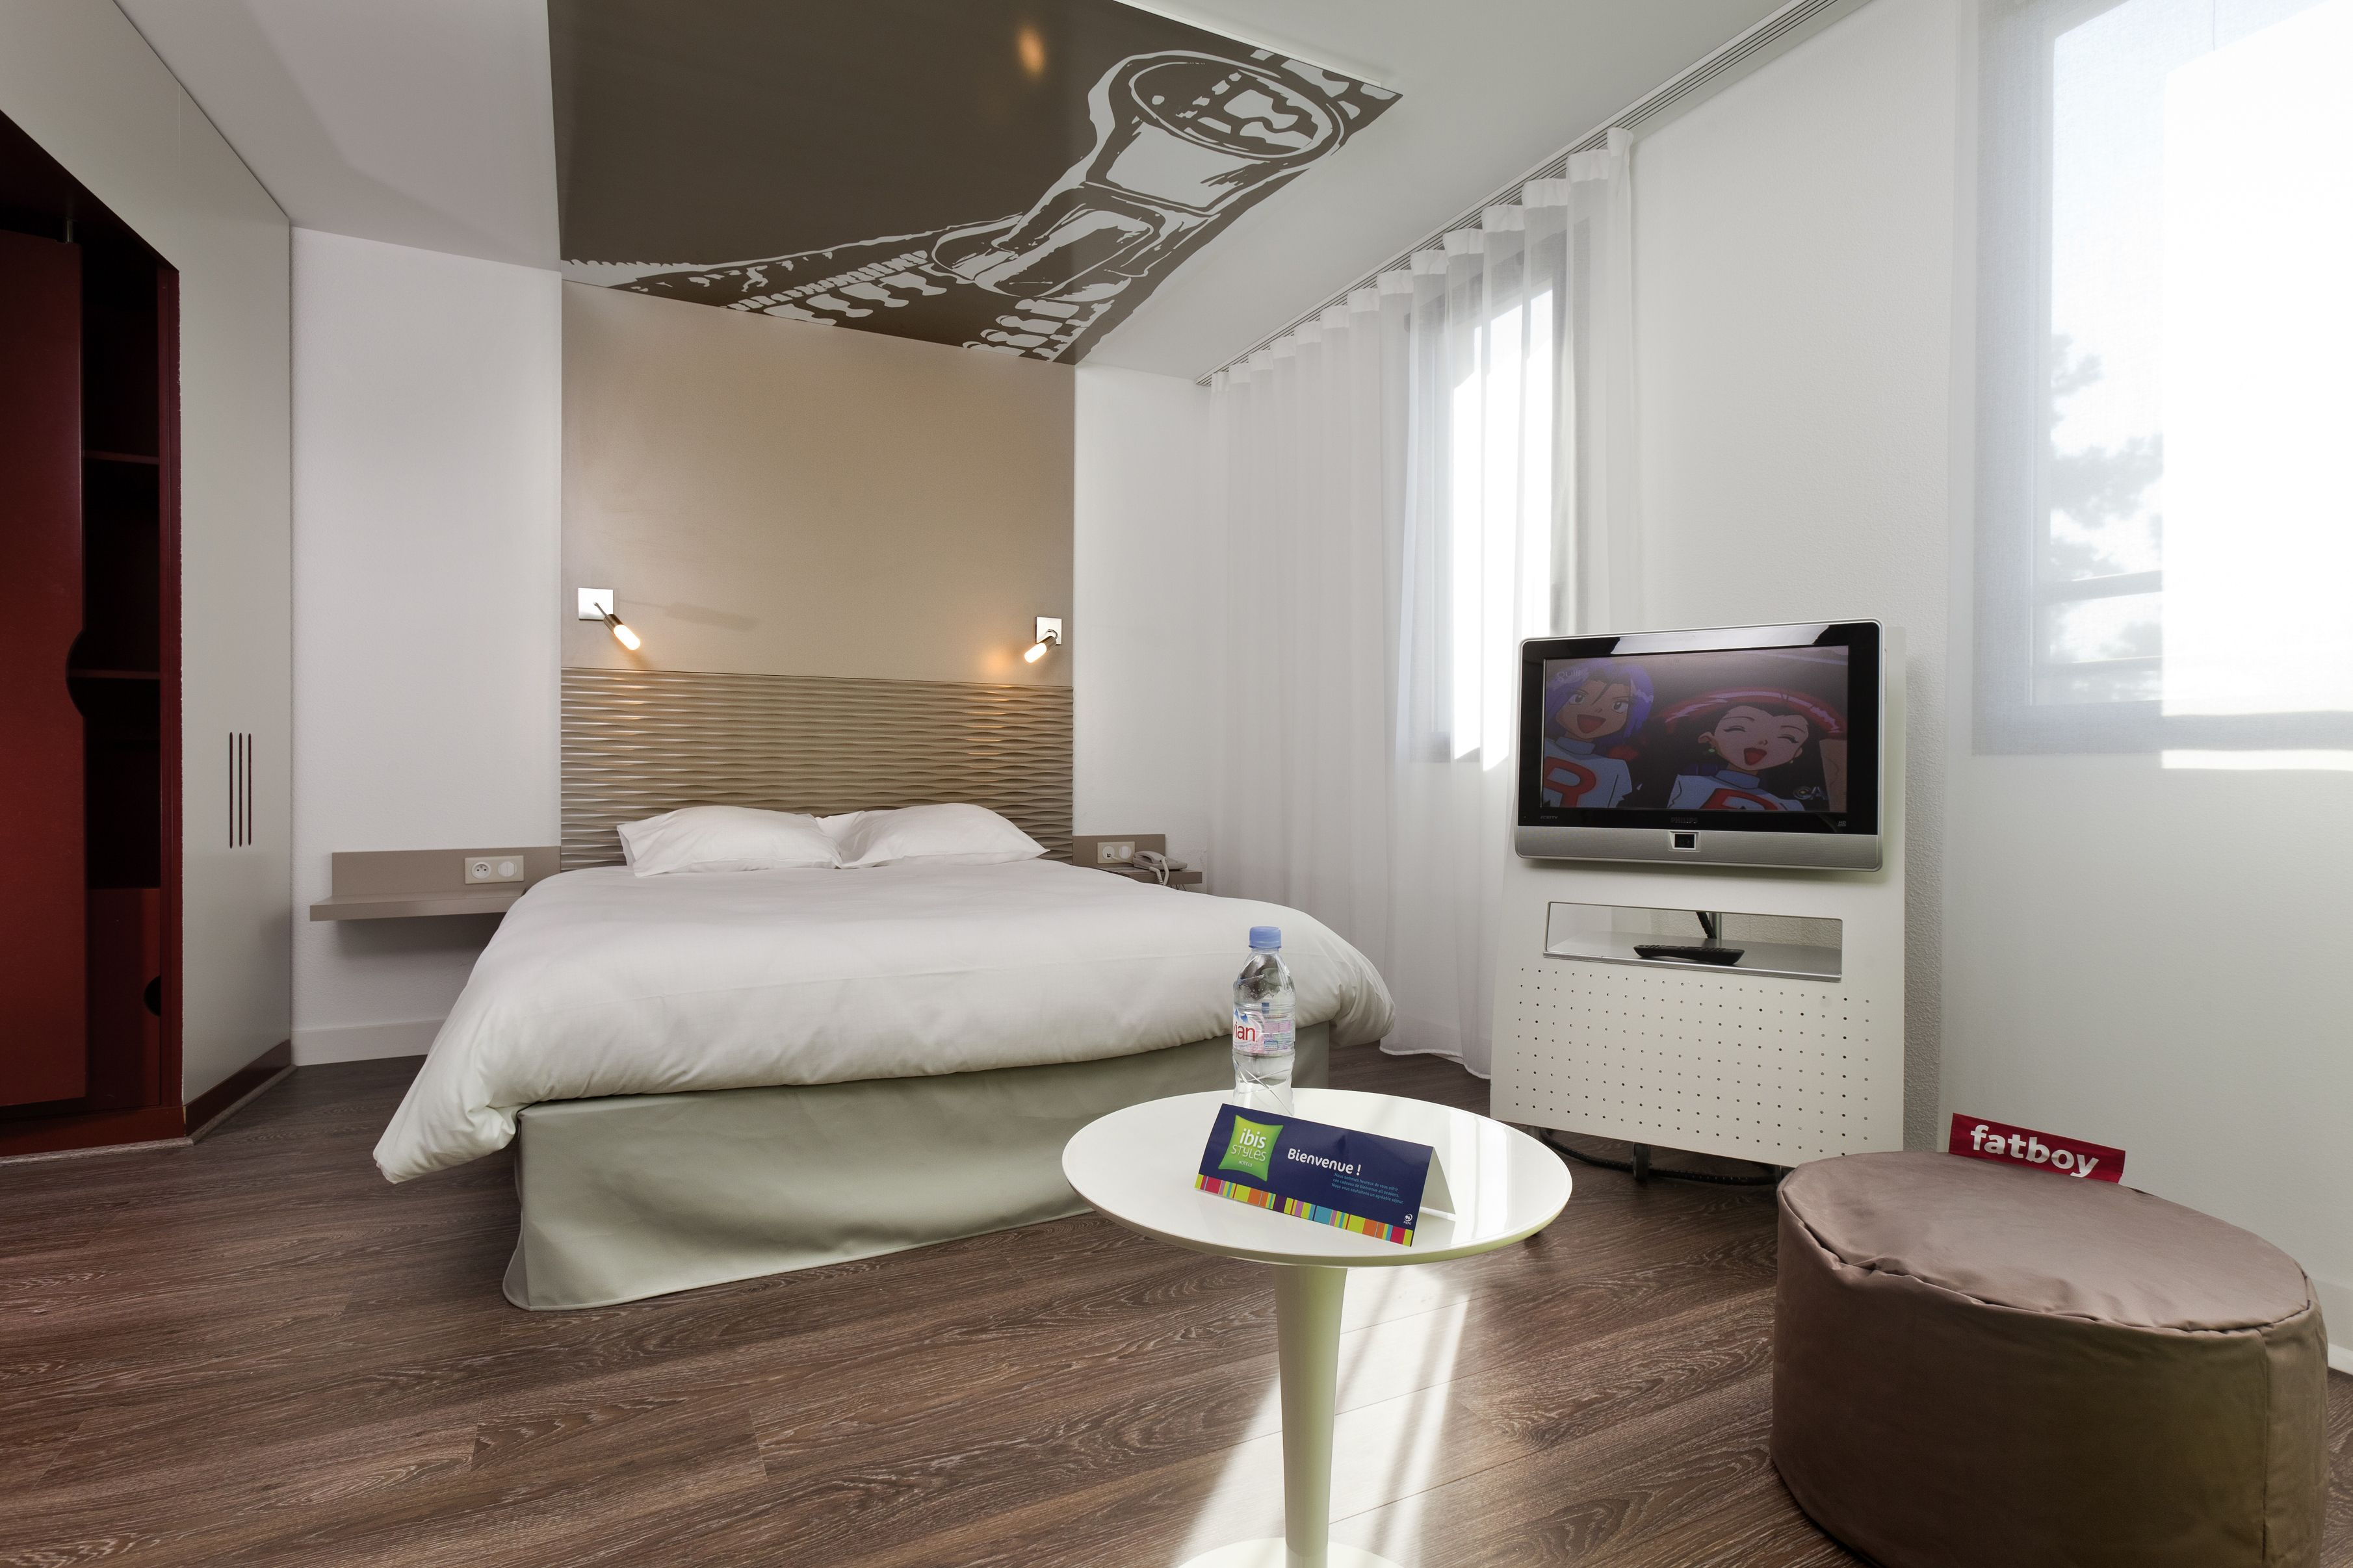 Chambre Ibis Styles Lille Aeroport Hotel Ibisstyles Lesquin Hotellesquin Hotellille Home Decor Lille Home